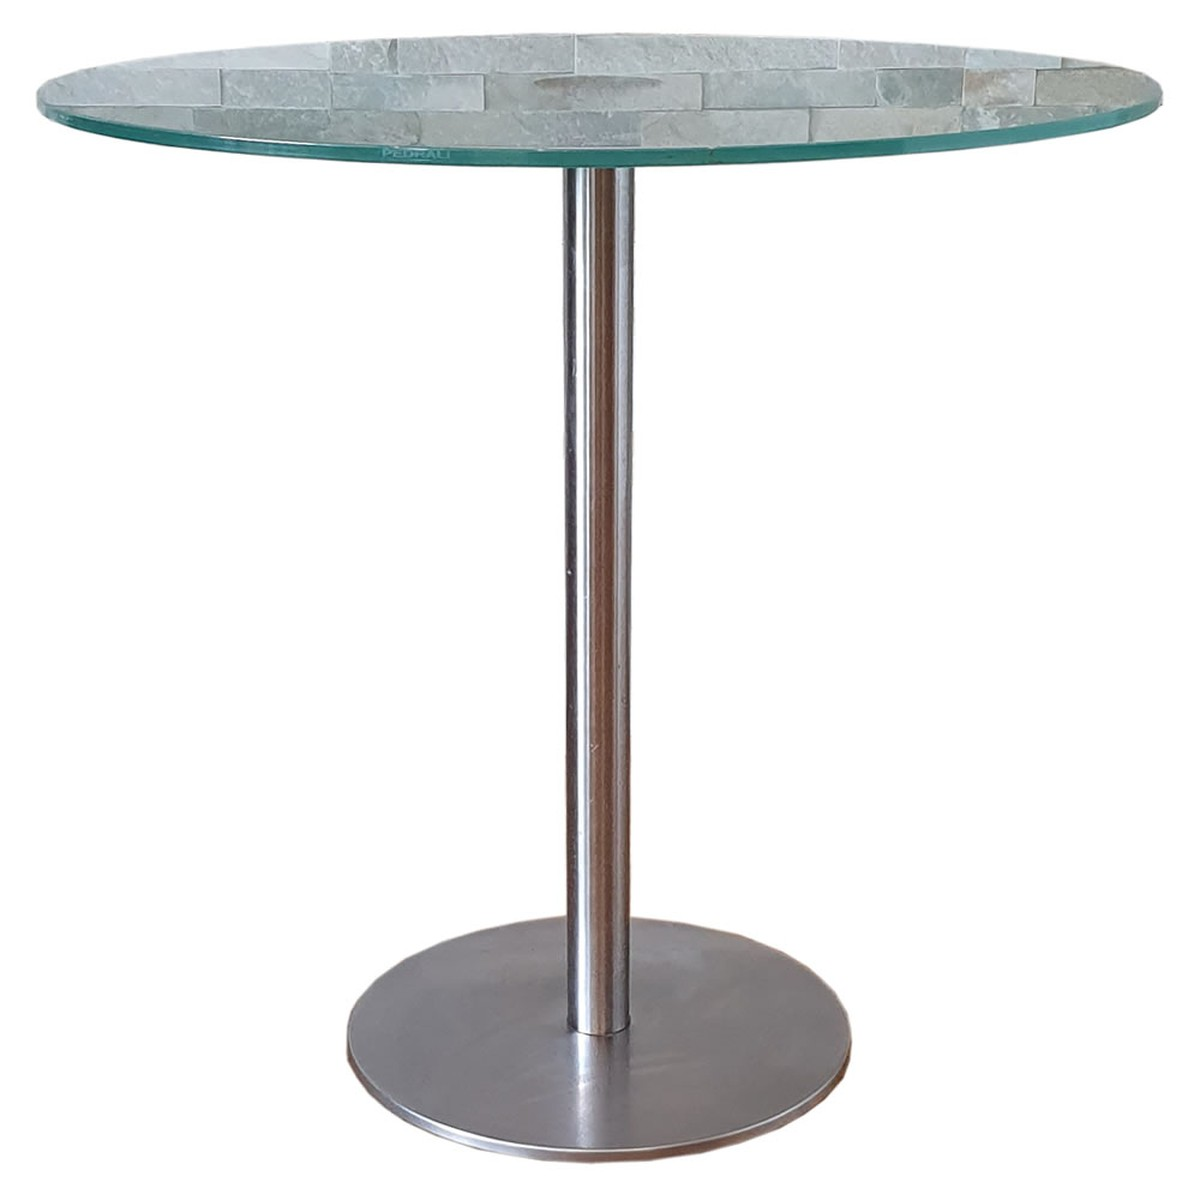 Cafe Furniture For Sale: Secondhand Chairs And Tables